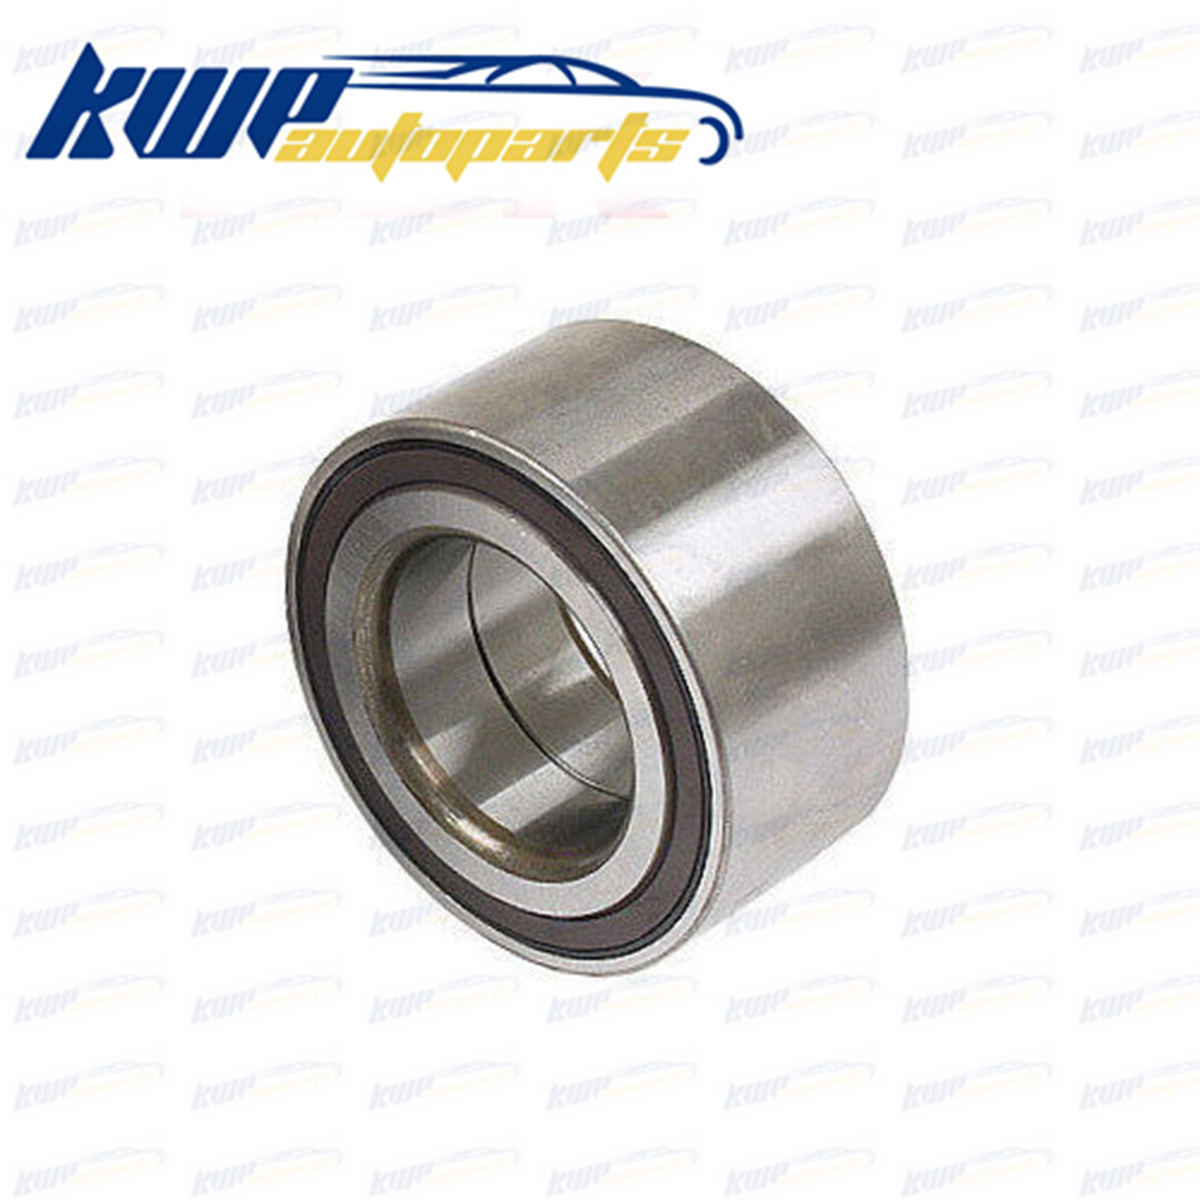 Front Wheel Bearing For Acura TL TSX Honda Accord Civic Jaguar XFR XJ XKR Land Rover Range #44300 SDA A51 44300 SDA A52